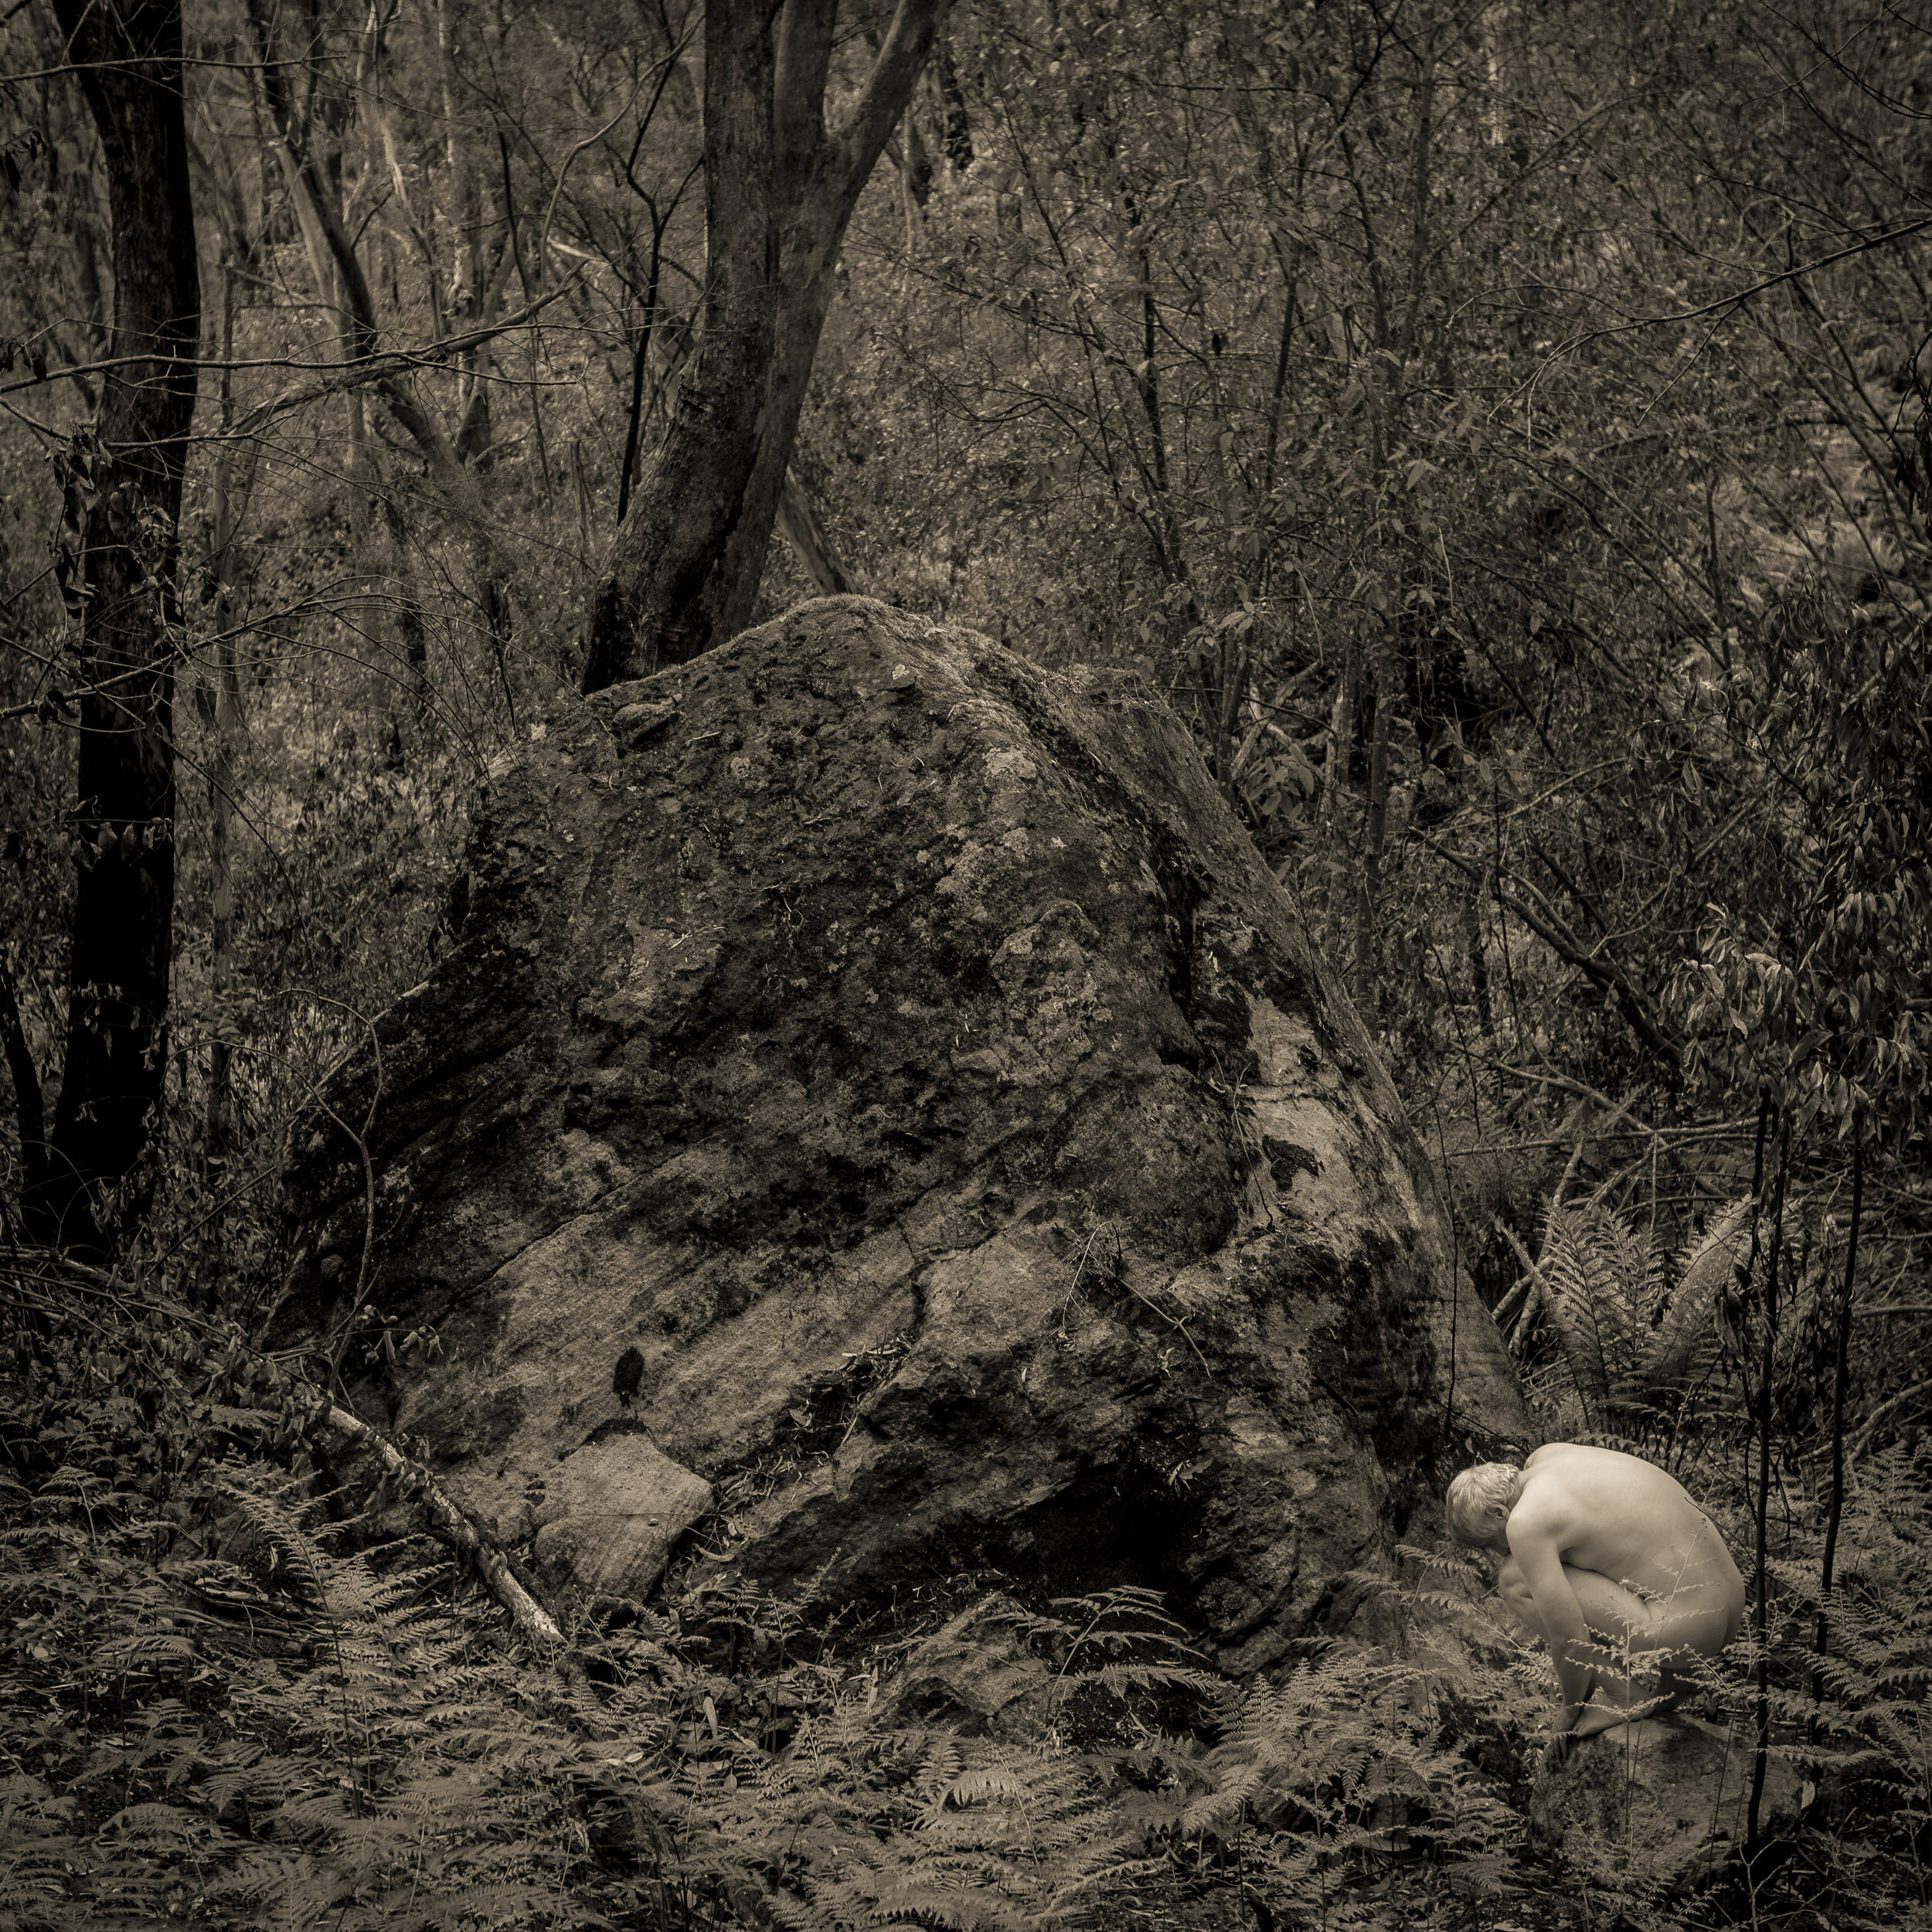 Eric and the Monolith - Flesh and Stone Series. In this series I am exploring the fragile soft and fleeting nature of human bodies and contrasting them with the hard and seemingly eternal nature of stone. As humans we are on the planet for such a short period of time, while geologically the stone lasts for millions of years. Our lives are a mere moment in their lifetime.